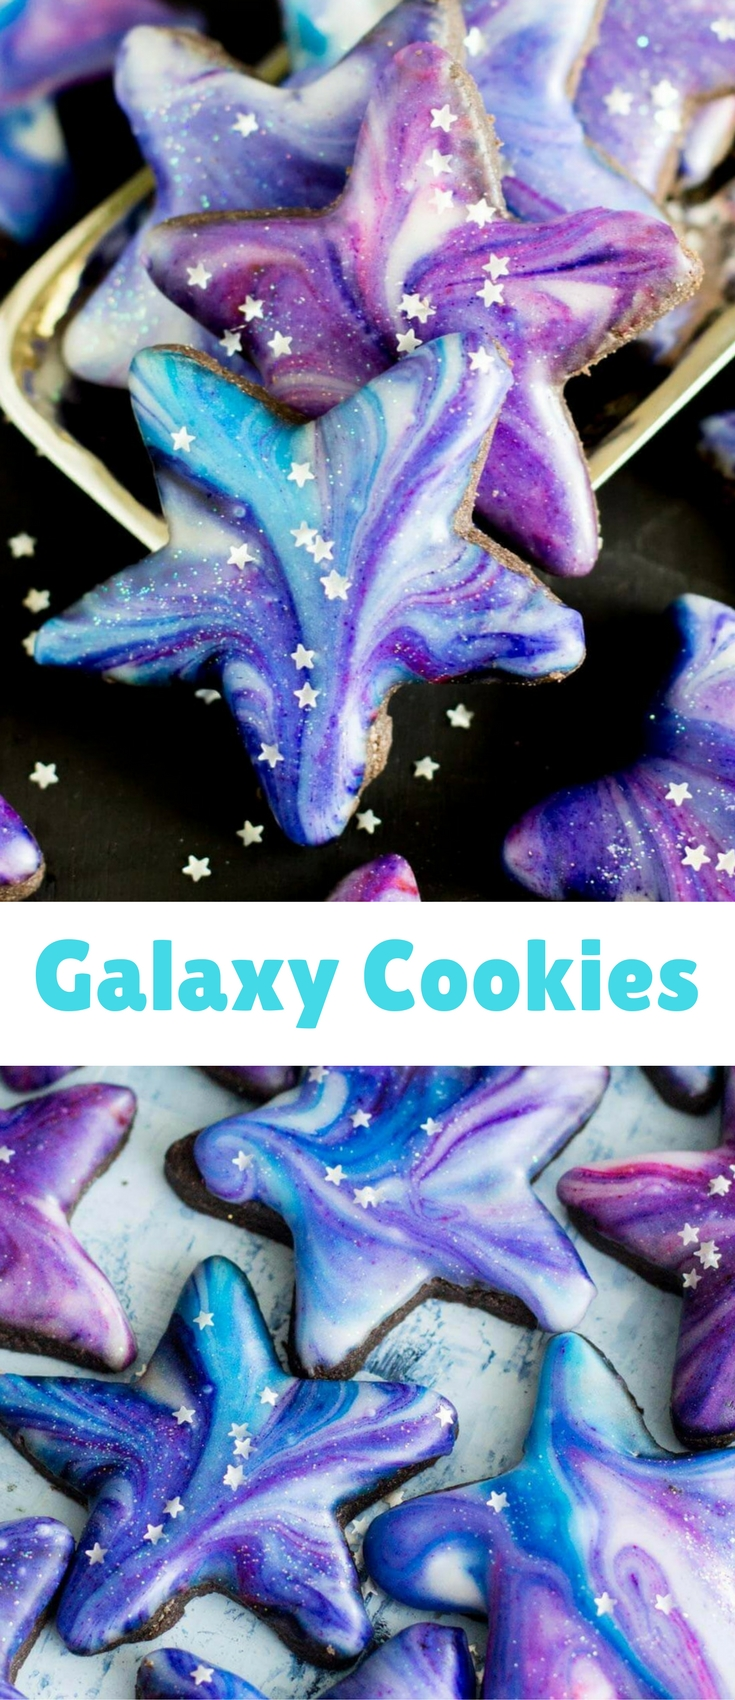 Galaxy Cookies: Star shaped cutout cookies with a galaxy glaze